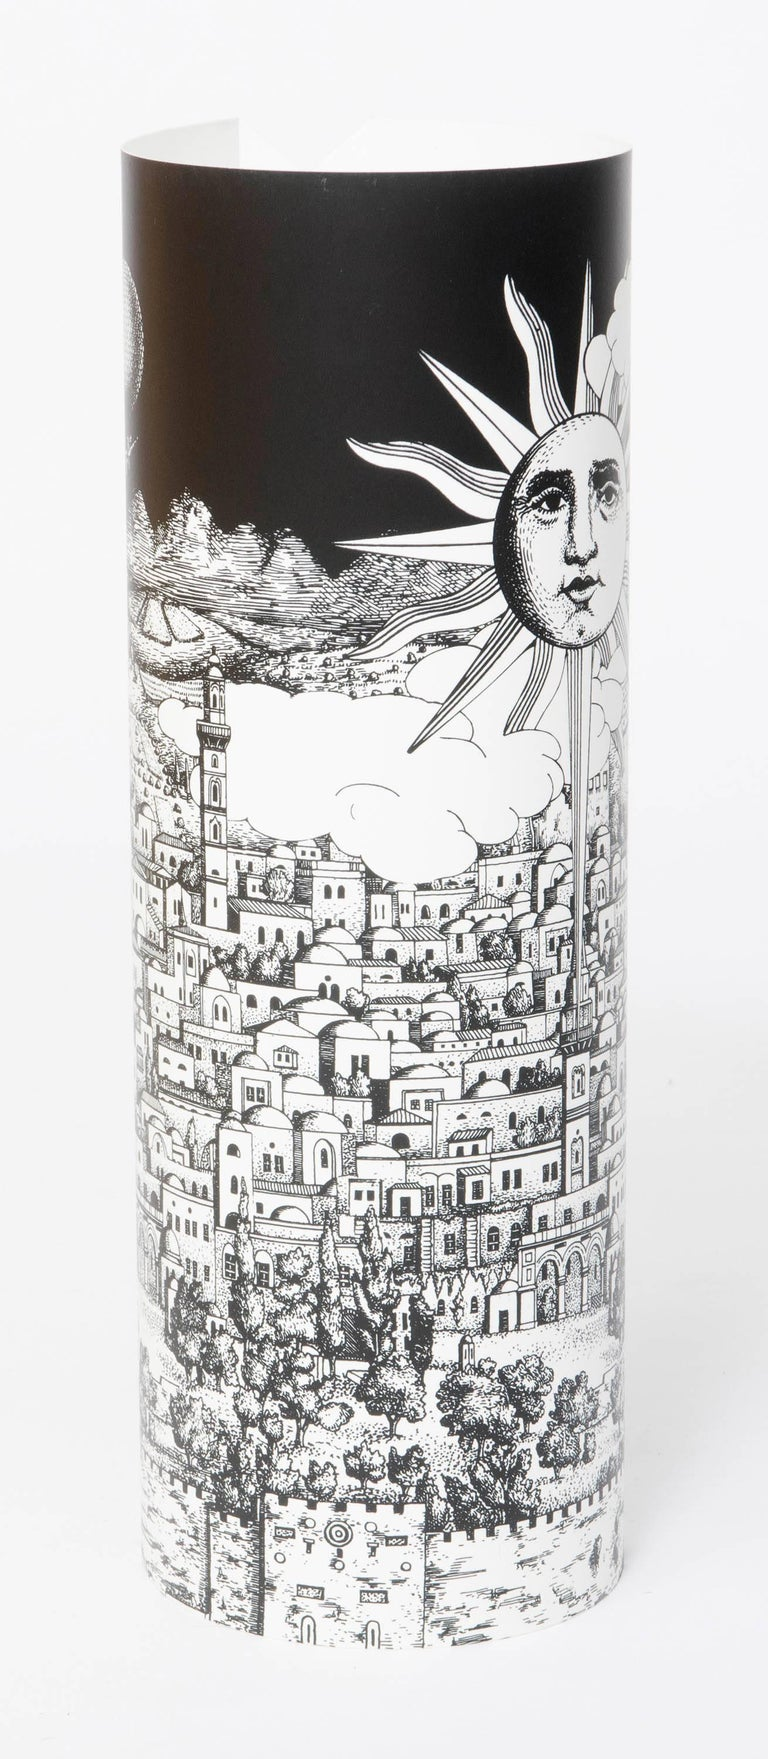 "A pair of table lamps by Barnaba Fornasetti ""Gerusalem"" Printed and colored perspex Made by Fornasetti and Antonangeli Iluminazione. Paderno Dugano. Italy, 1995 Measures: 60 cm H x 25cm W."